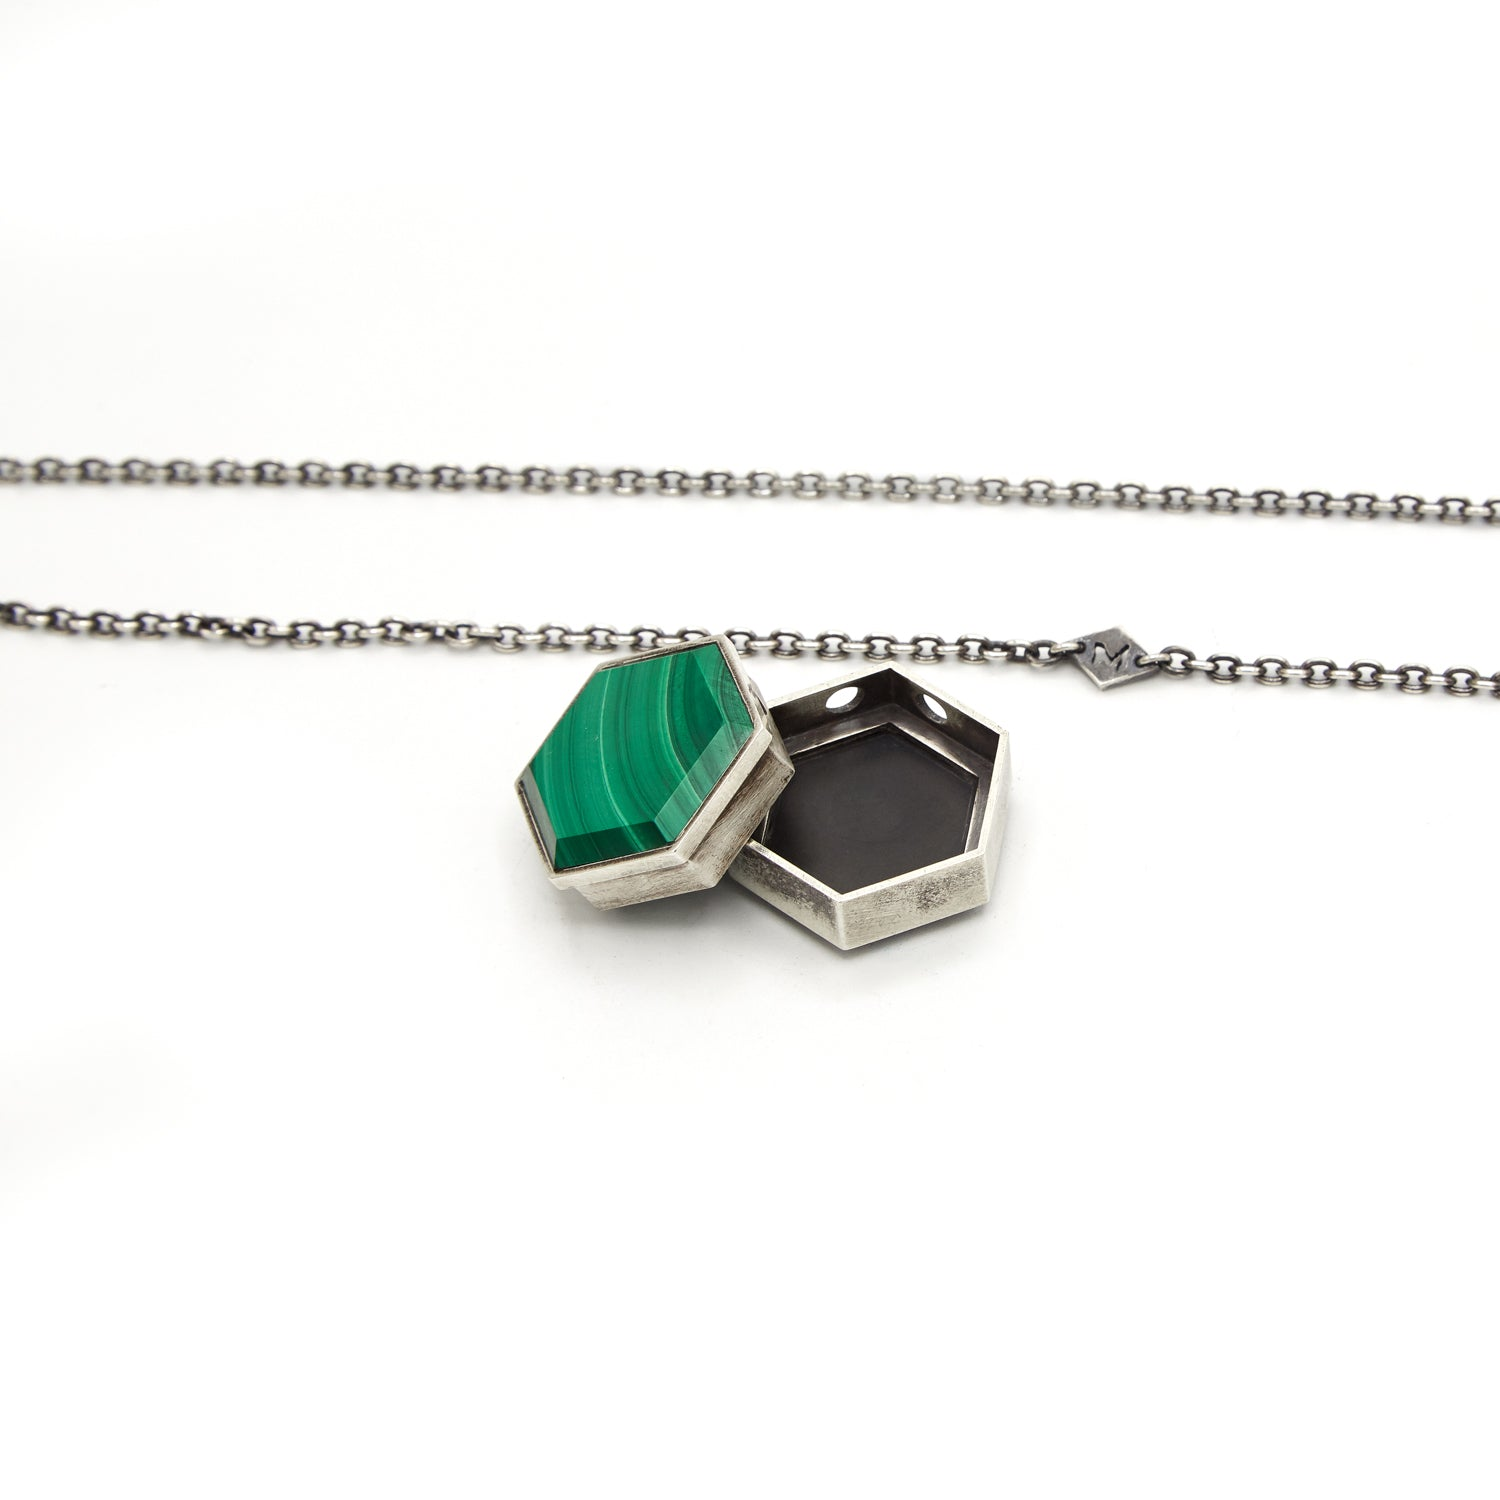 MALACHITE/BLACK ONYX LARGE HEXAGON GEO LOCKET